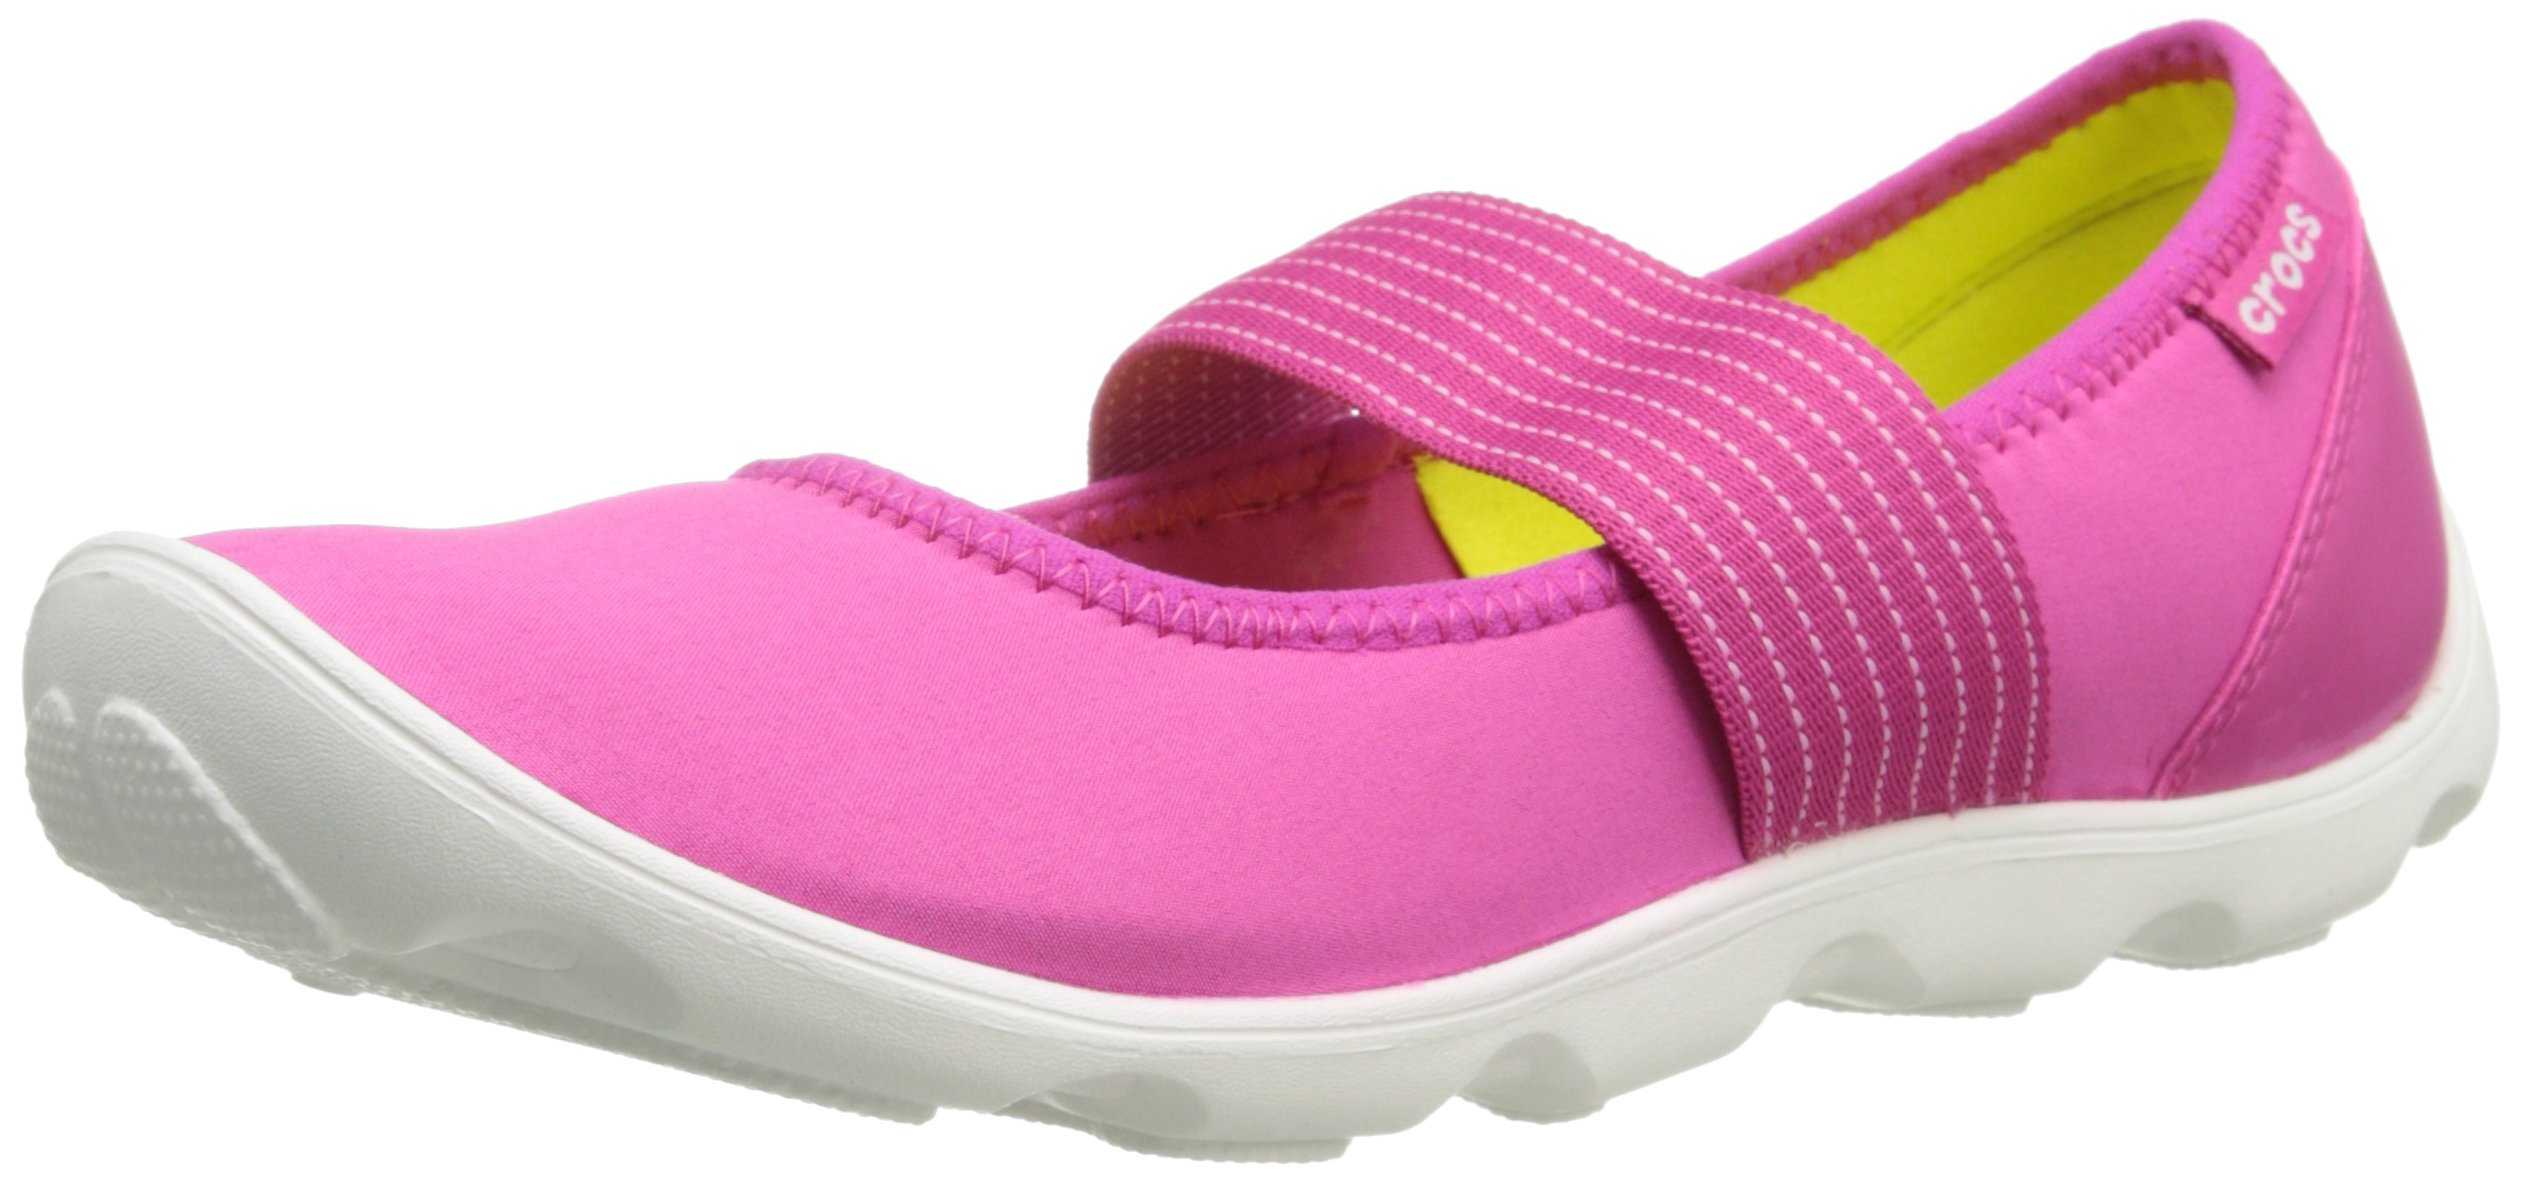 Crocs Women's 16025 Duet Busy Day Mary Jane Flat,Candy Pink/White,8 M US